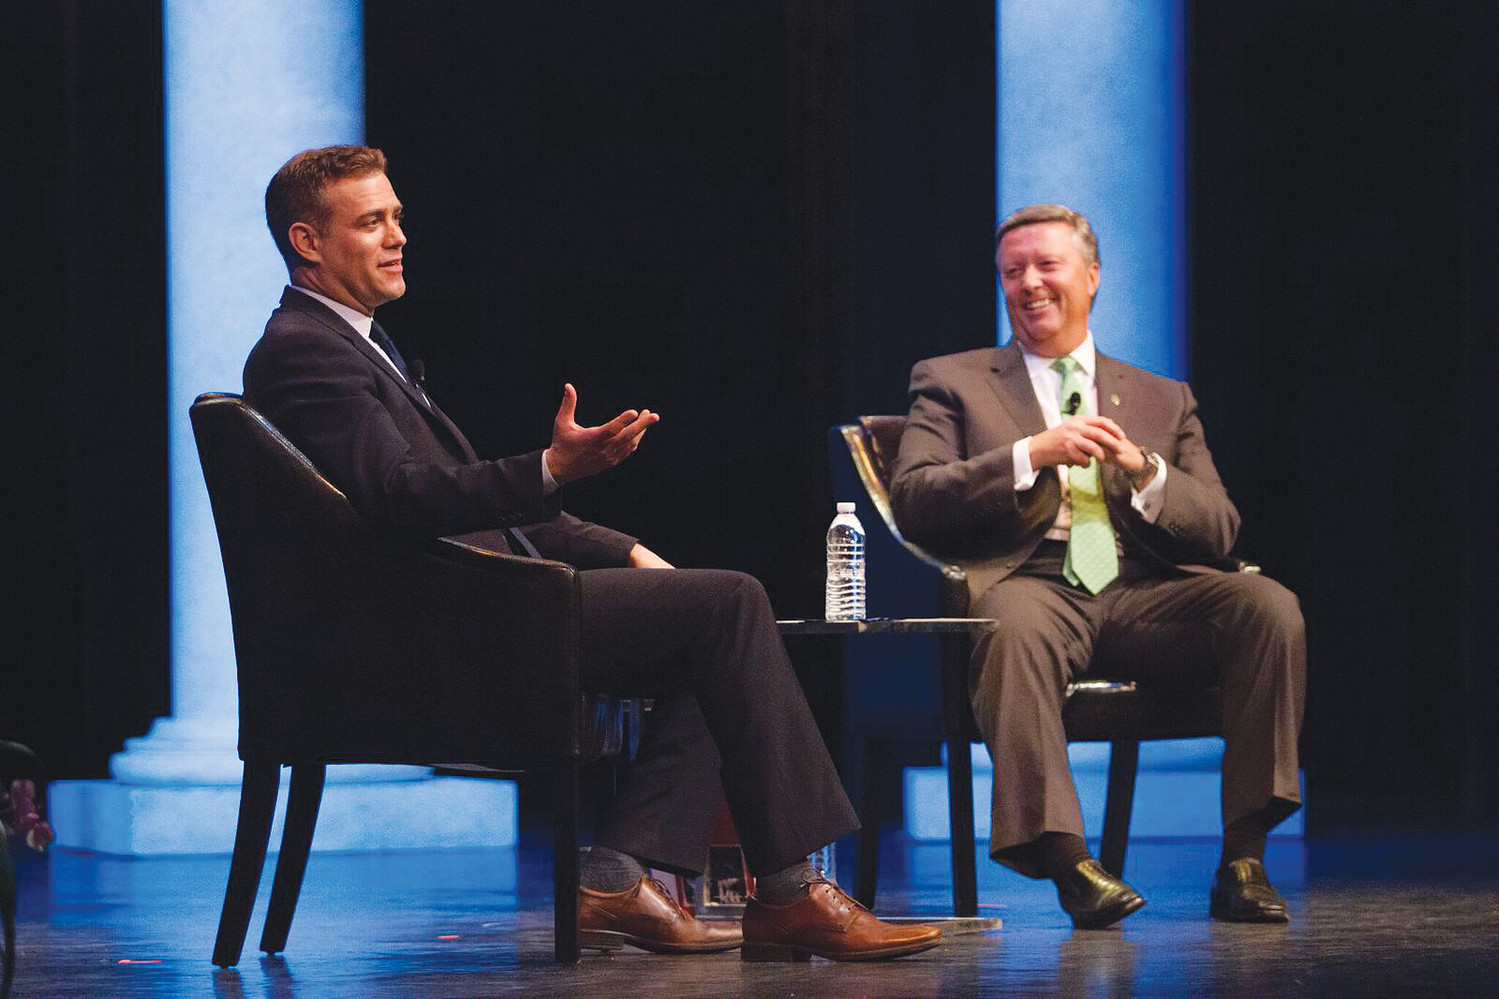 Chicago Cubs President of Baseball Operations Theo Epstein chats with Jacksonville University President Tim Cost at Epstein's Florida Forum address Jan. 16 at the Times-Union Center for the Performing Arts.